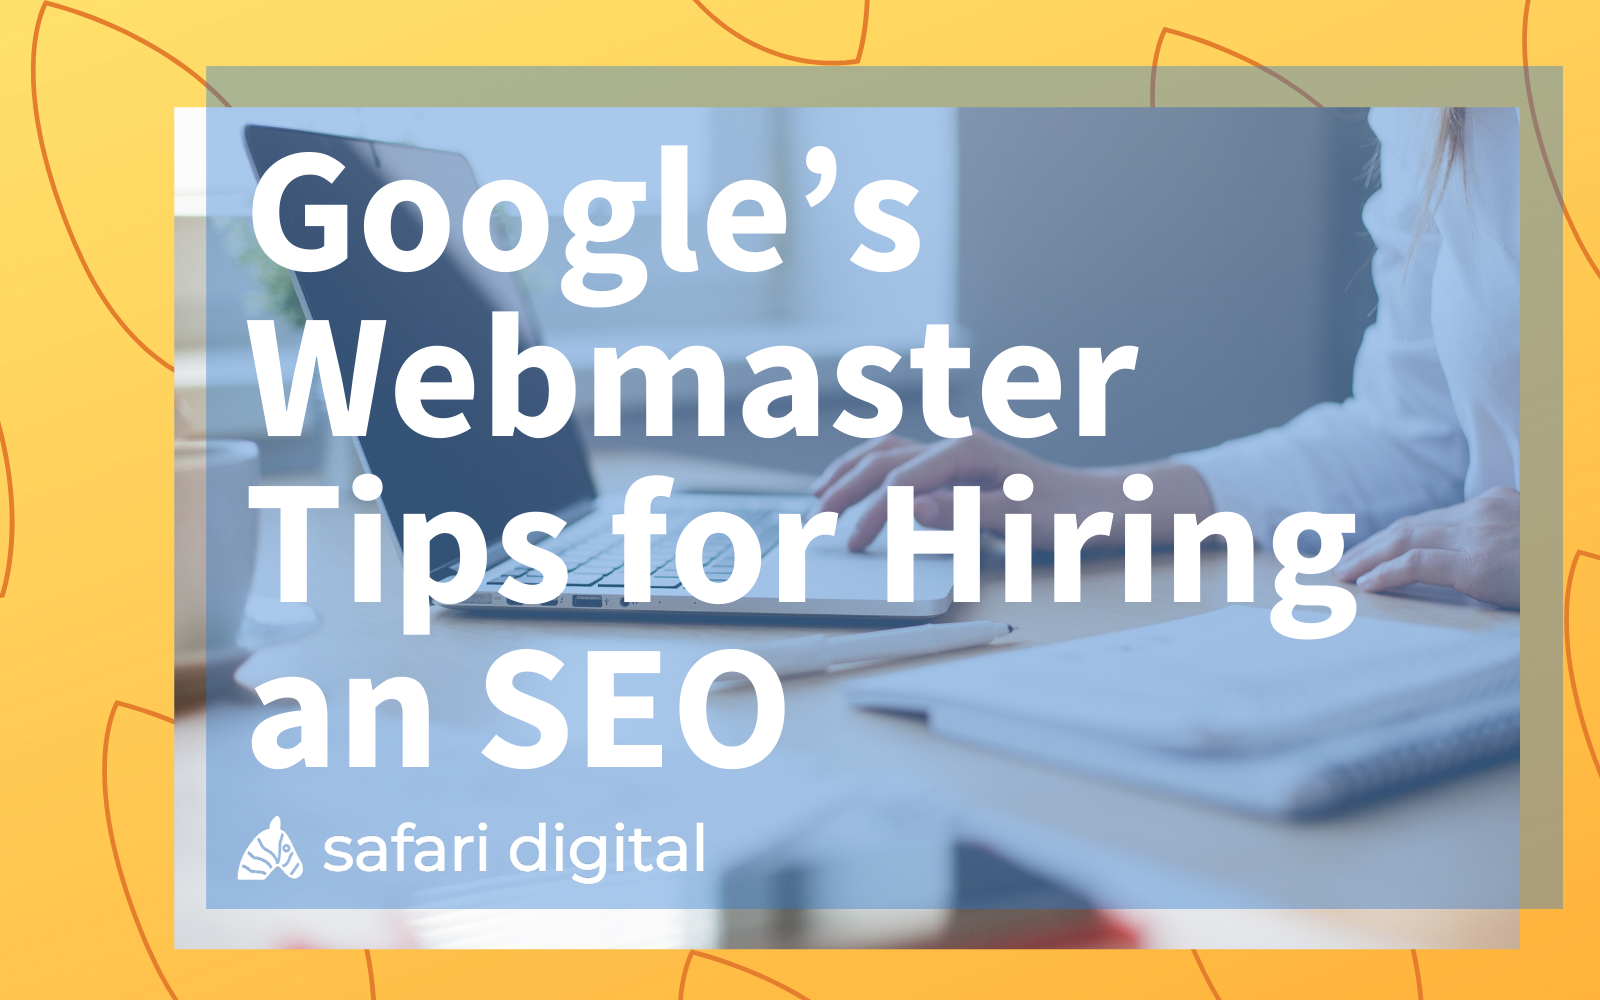 Google webmasters tips for hiring an SEO article cover large